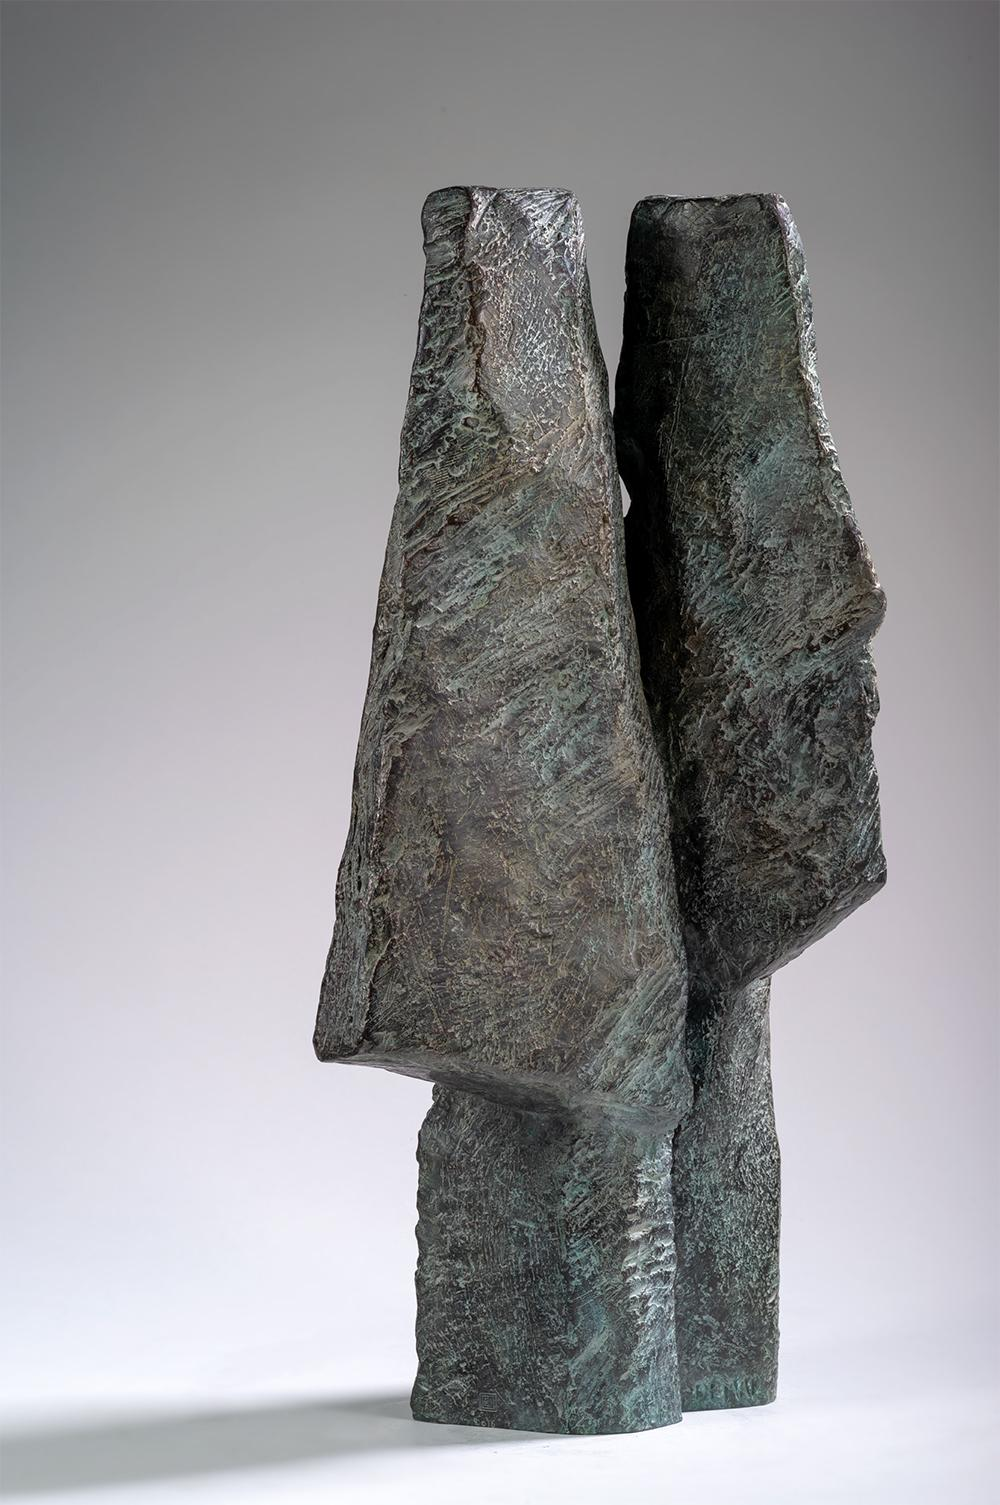 Janus Heads by Martine Demal - Contemporary bronze sculpture, Semi Abstract